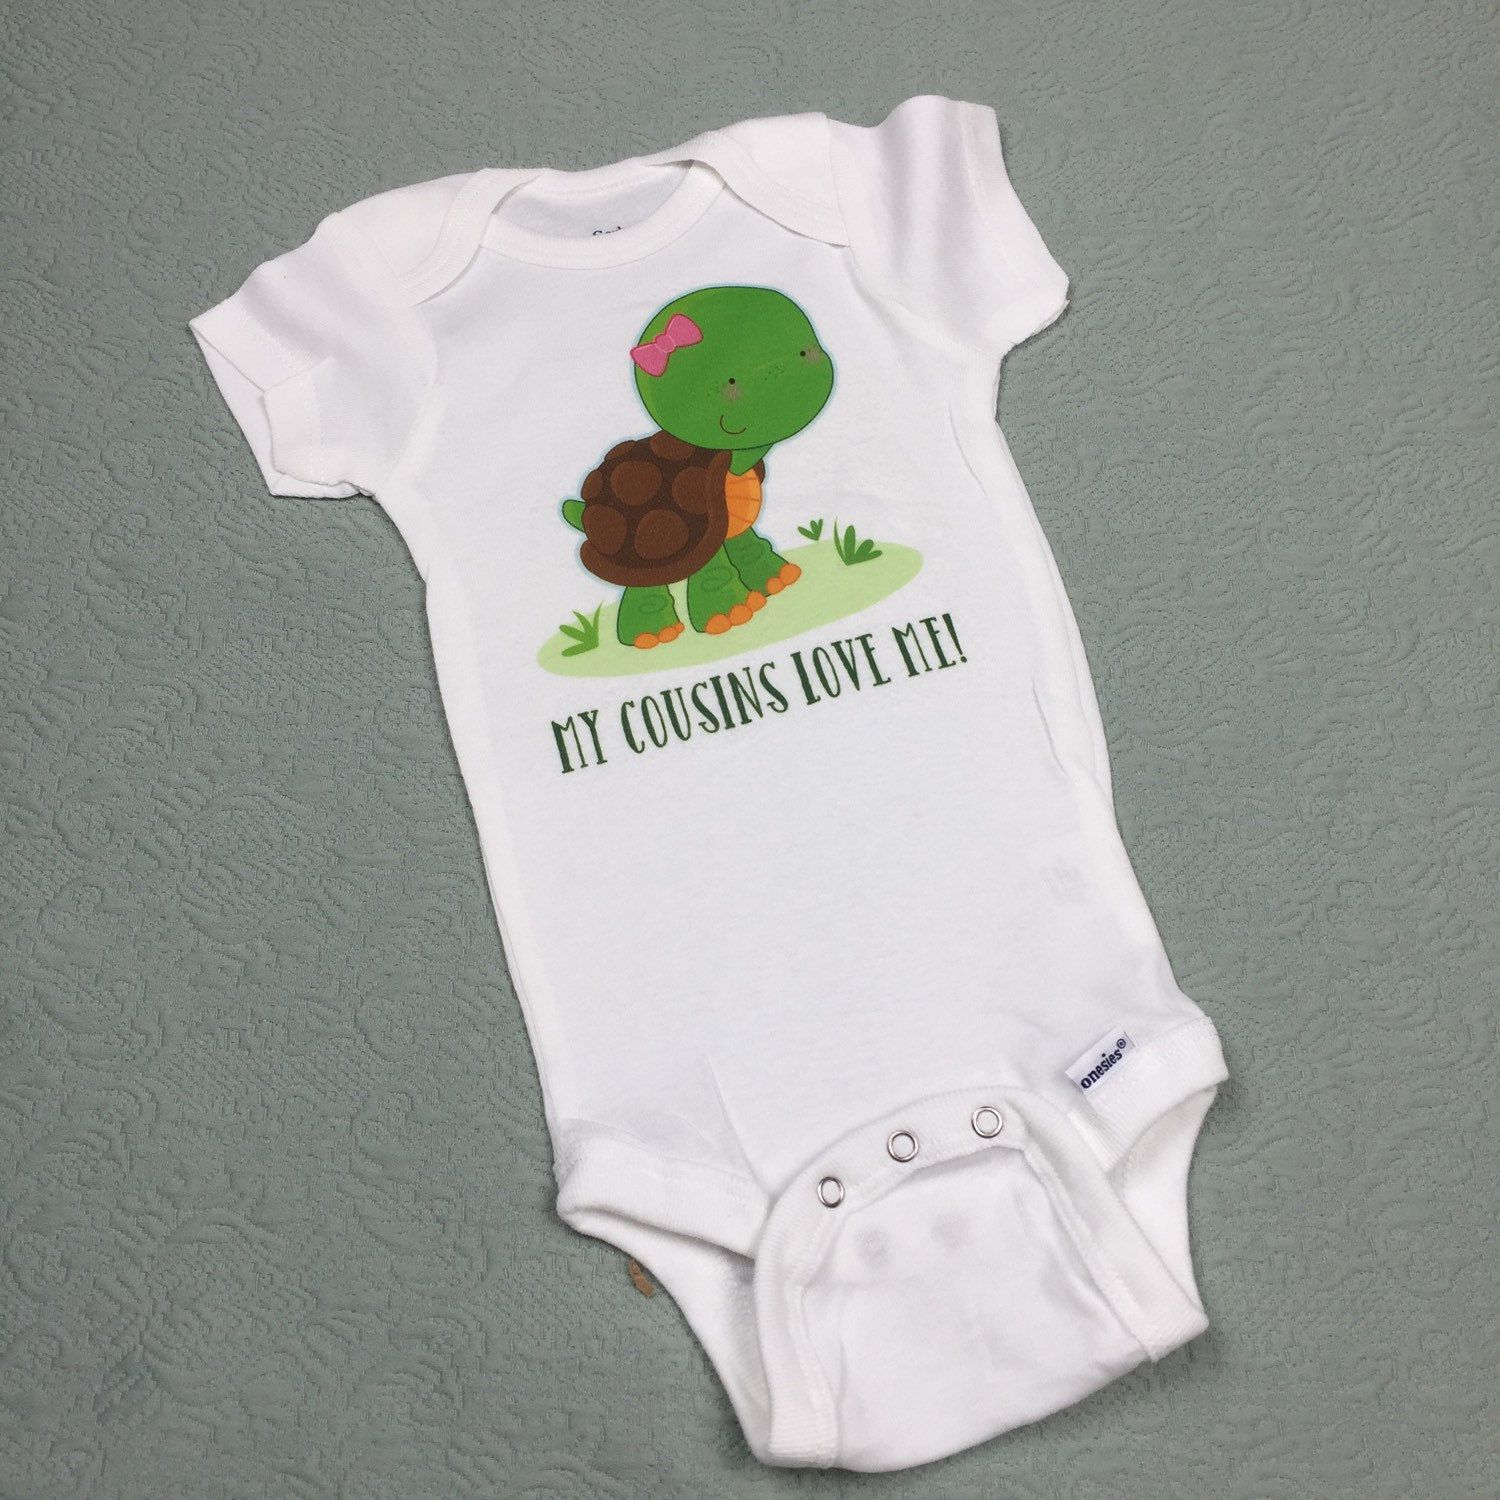 My Cousins Love Me Onesie Or Tee Shirt With Cute Little